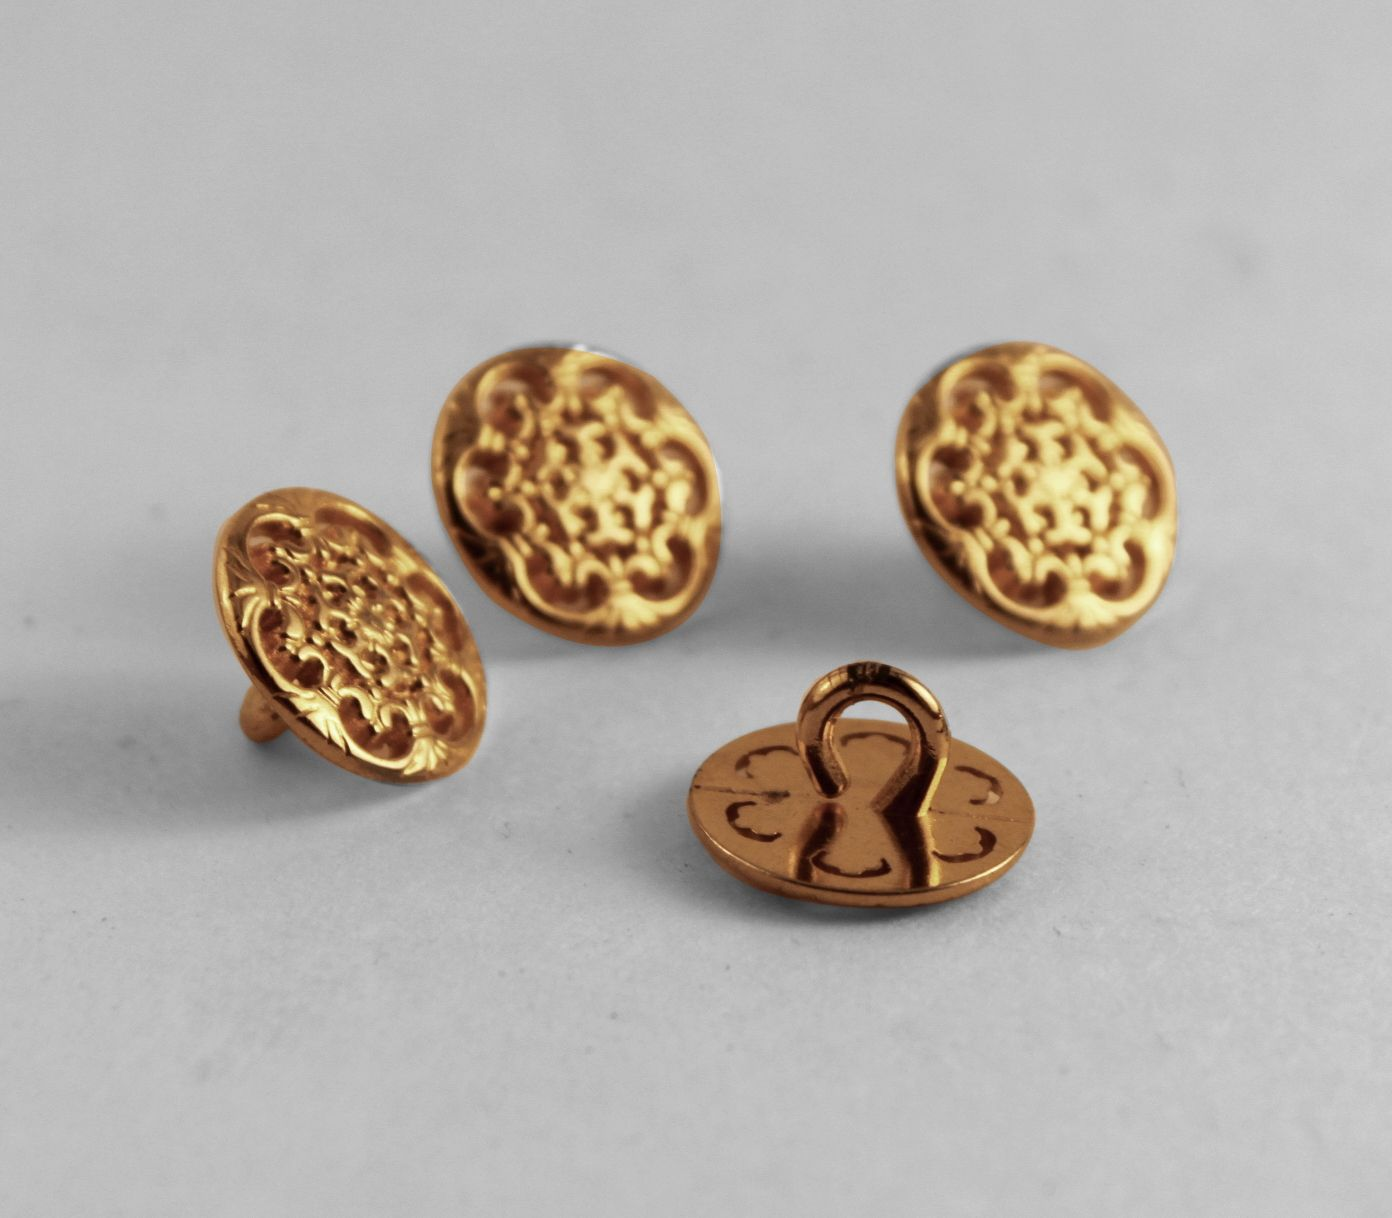 Gold tone metal buttons